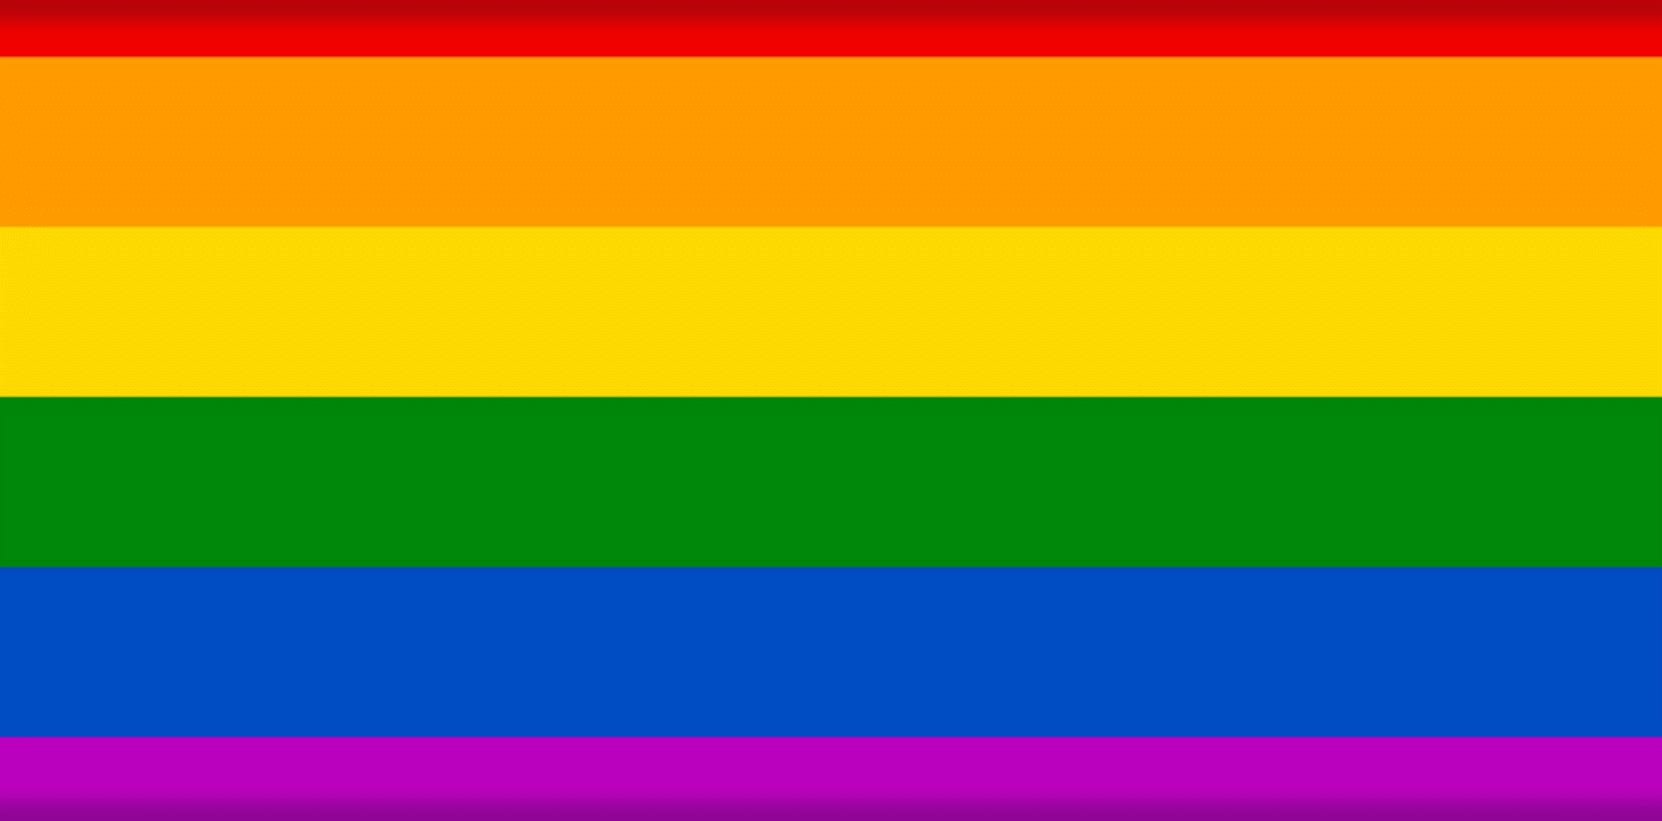 LGBTQ+ Pride Flag rainbow colors